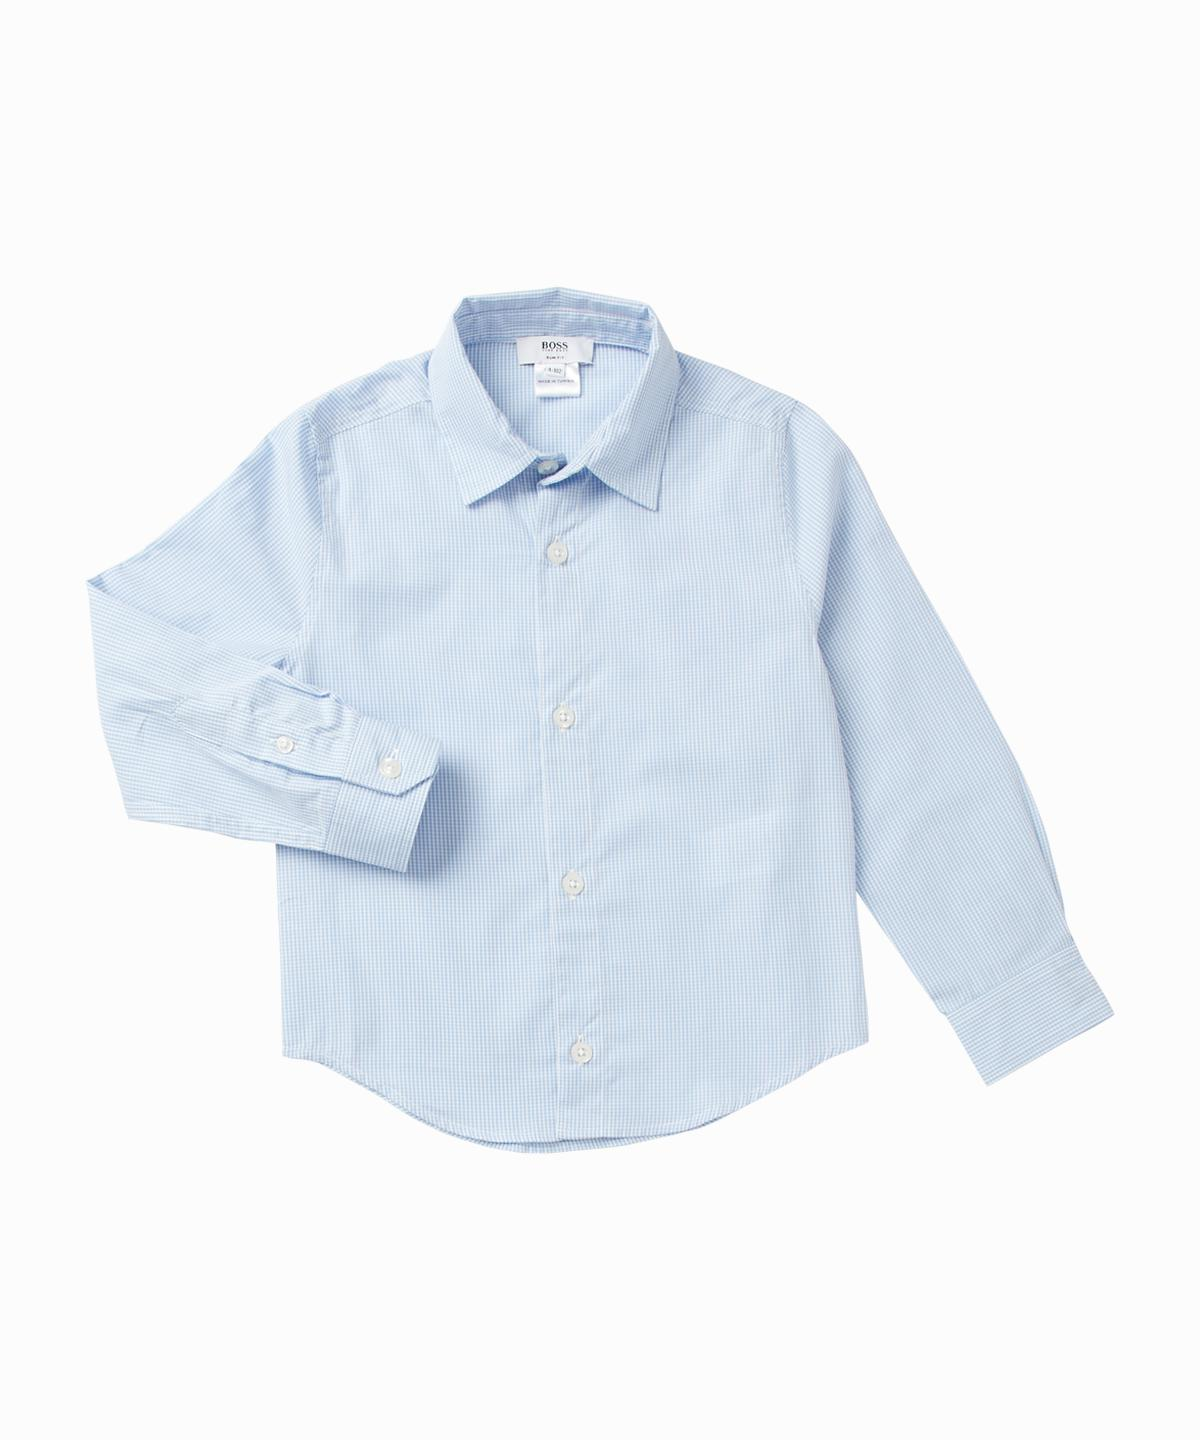 Light Blue Gingham Shirt